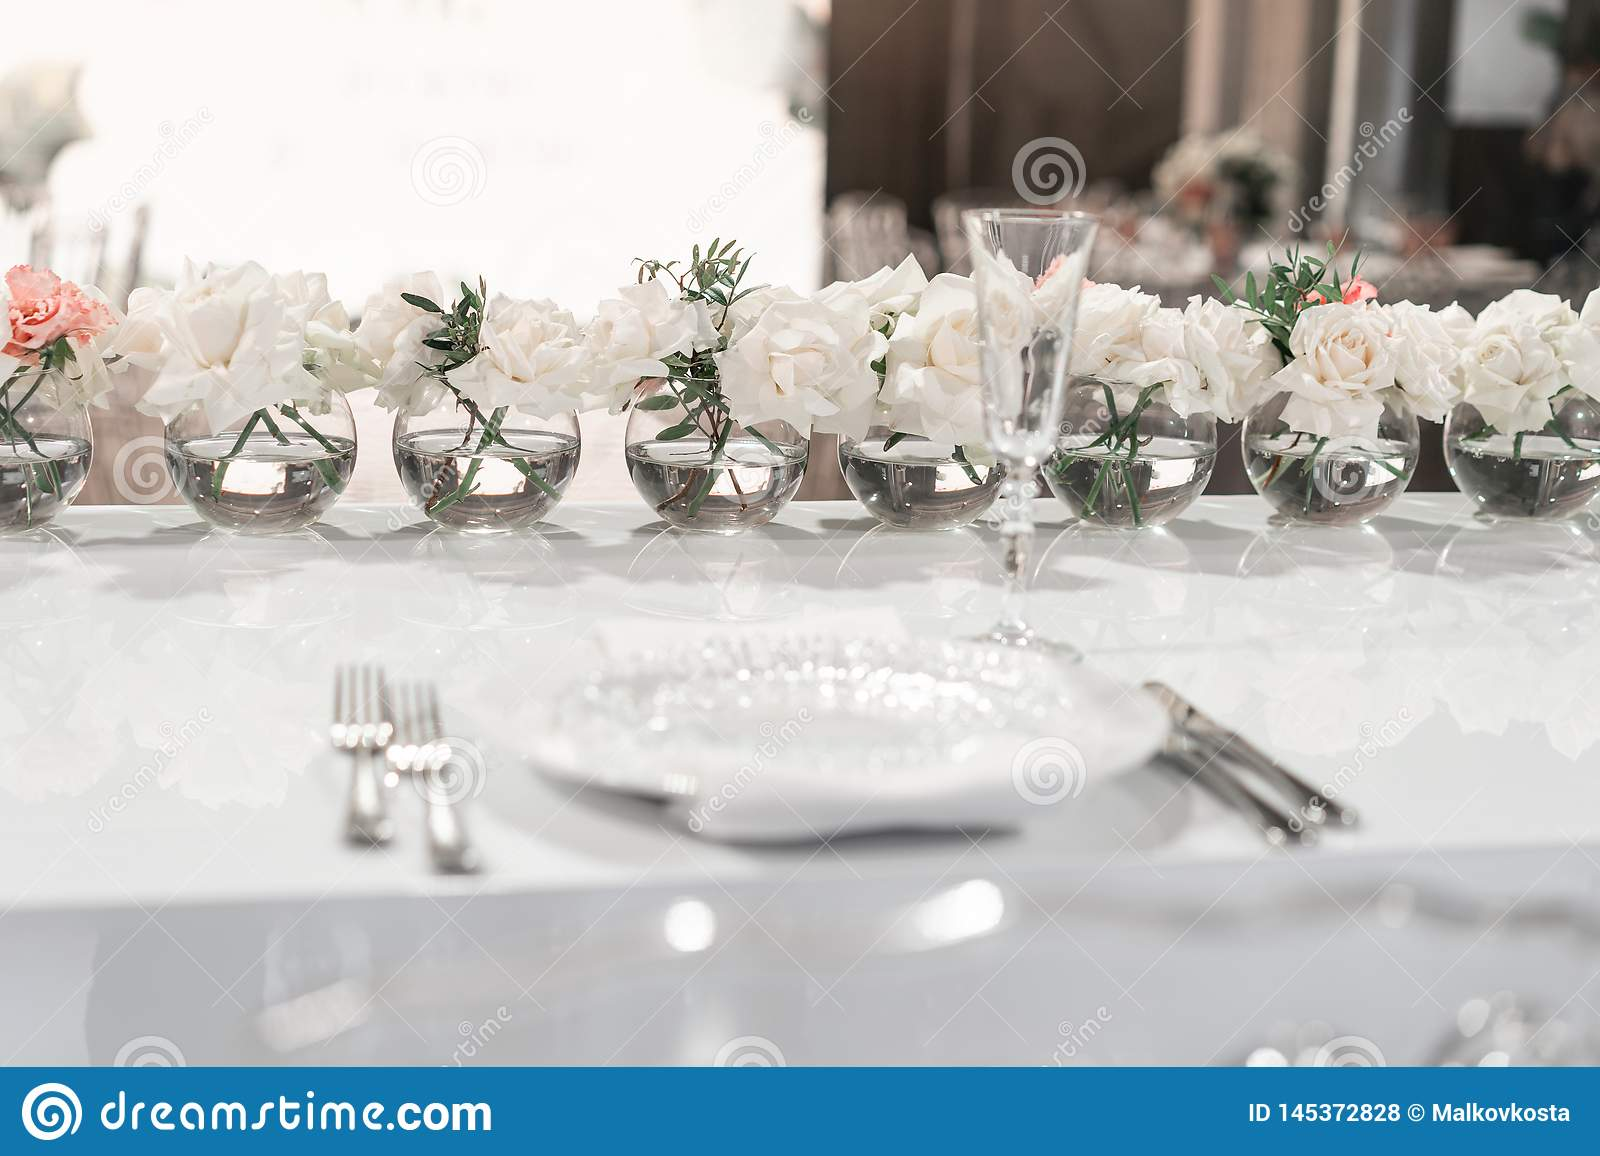 Small Flower Arrangements In Ball Glass Vases The Table Of The Newlyweds Interior Of Restaurant For Wedding Dinner Stock Photo Image Of Elegant Flower 145372828